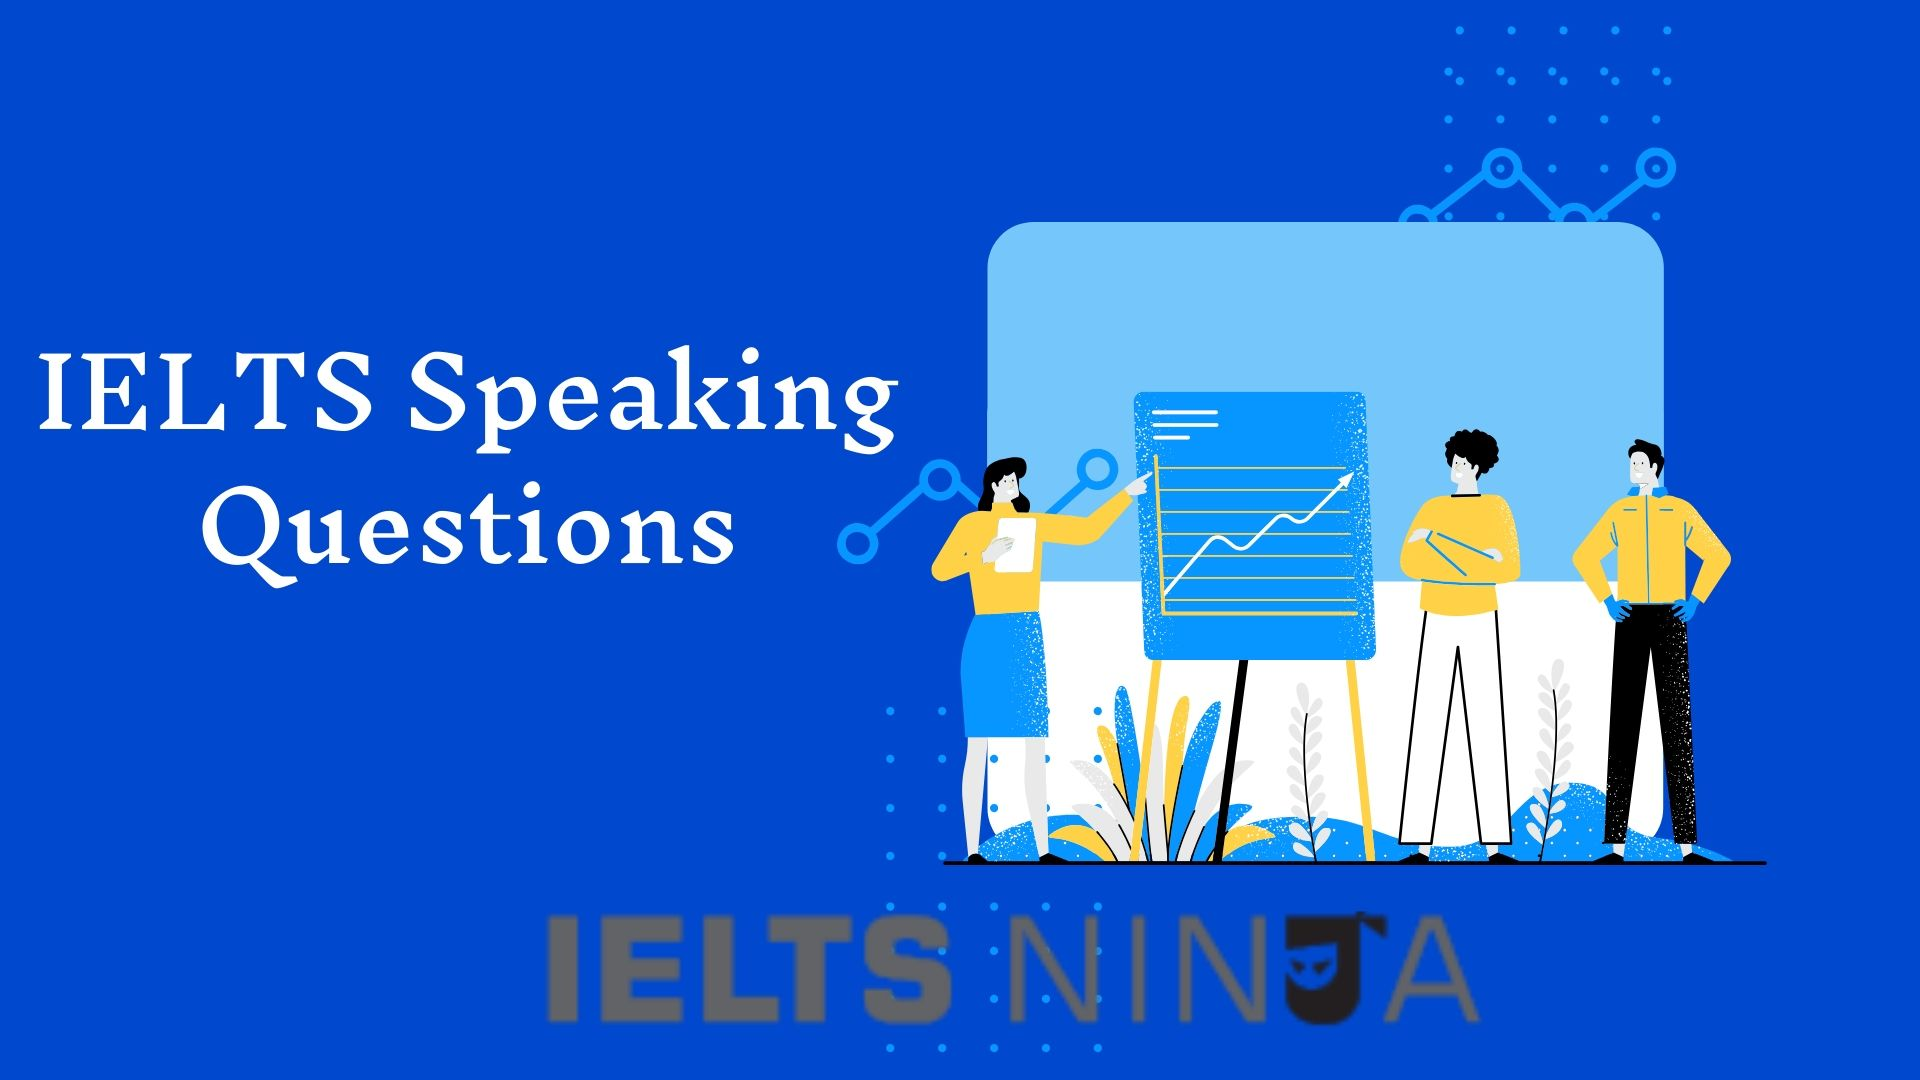 ielts speaking questions